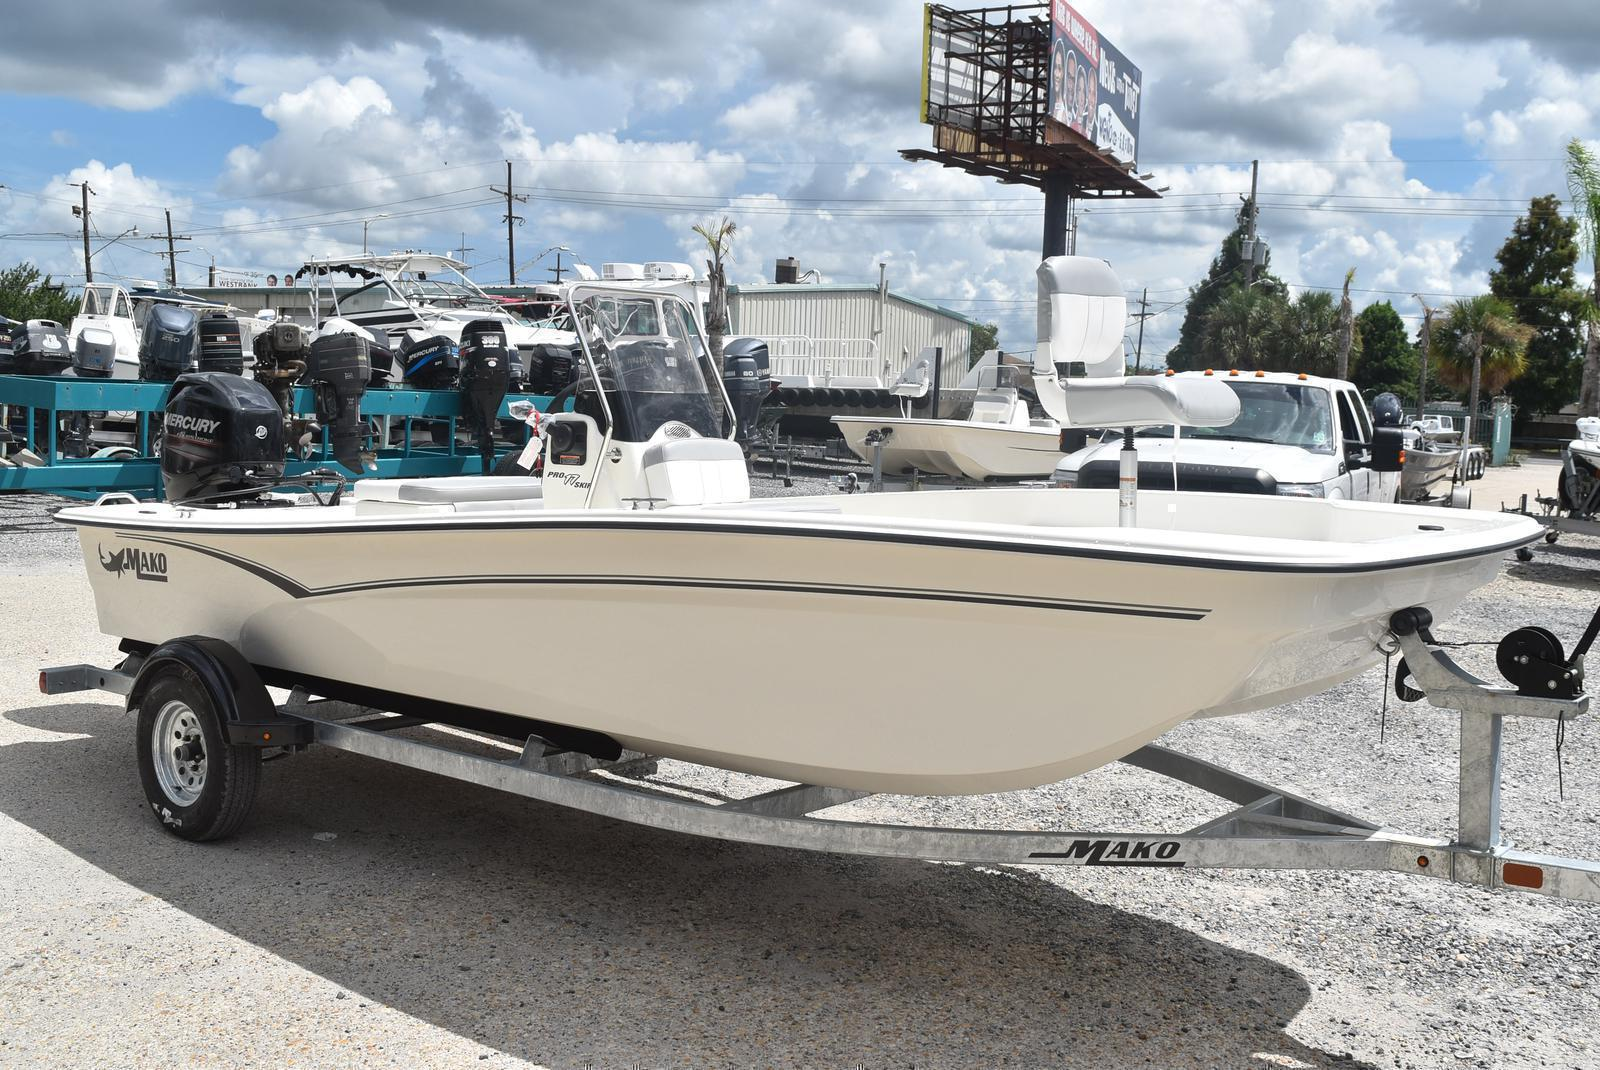 2020 Mako boat for sale, model of the boat is Pro Skiff 17, 75 ELPT & Image # 670 of 702